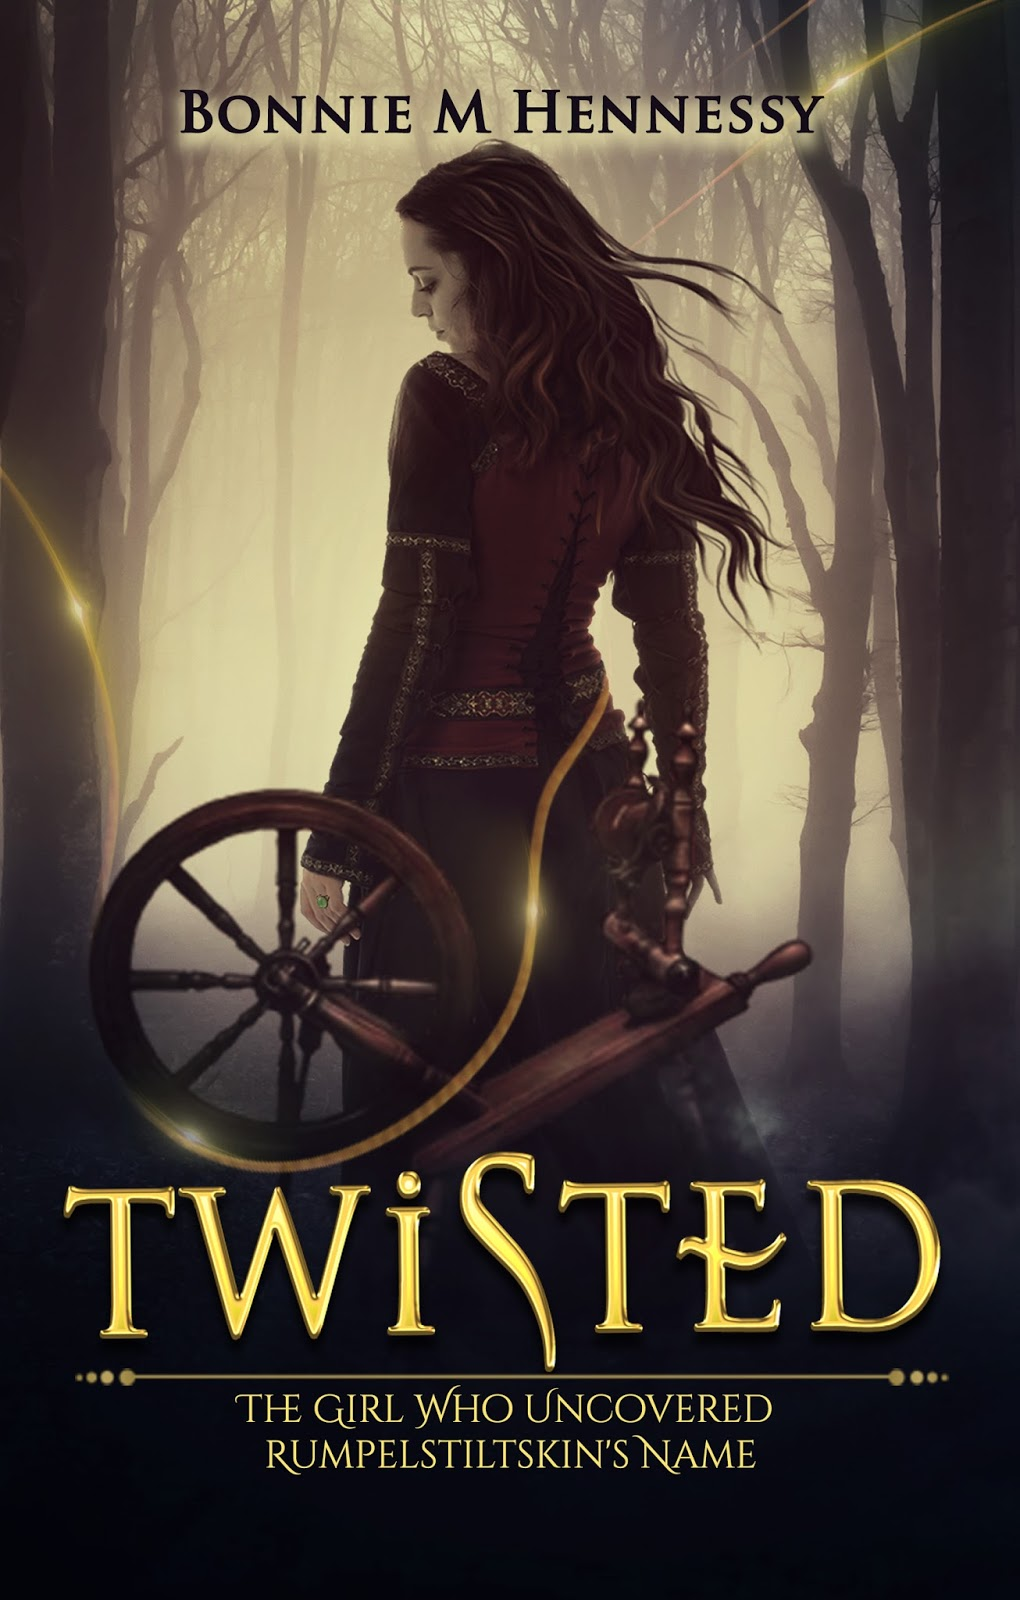 Twisted: The Girl Who Uncovered